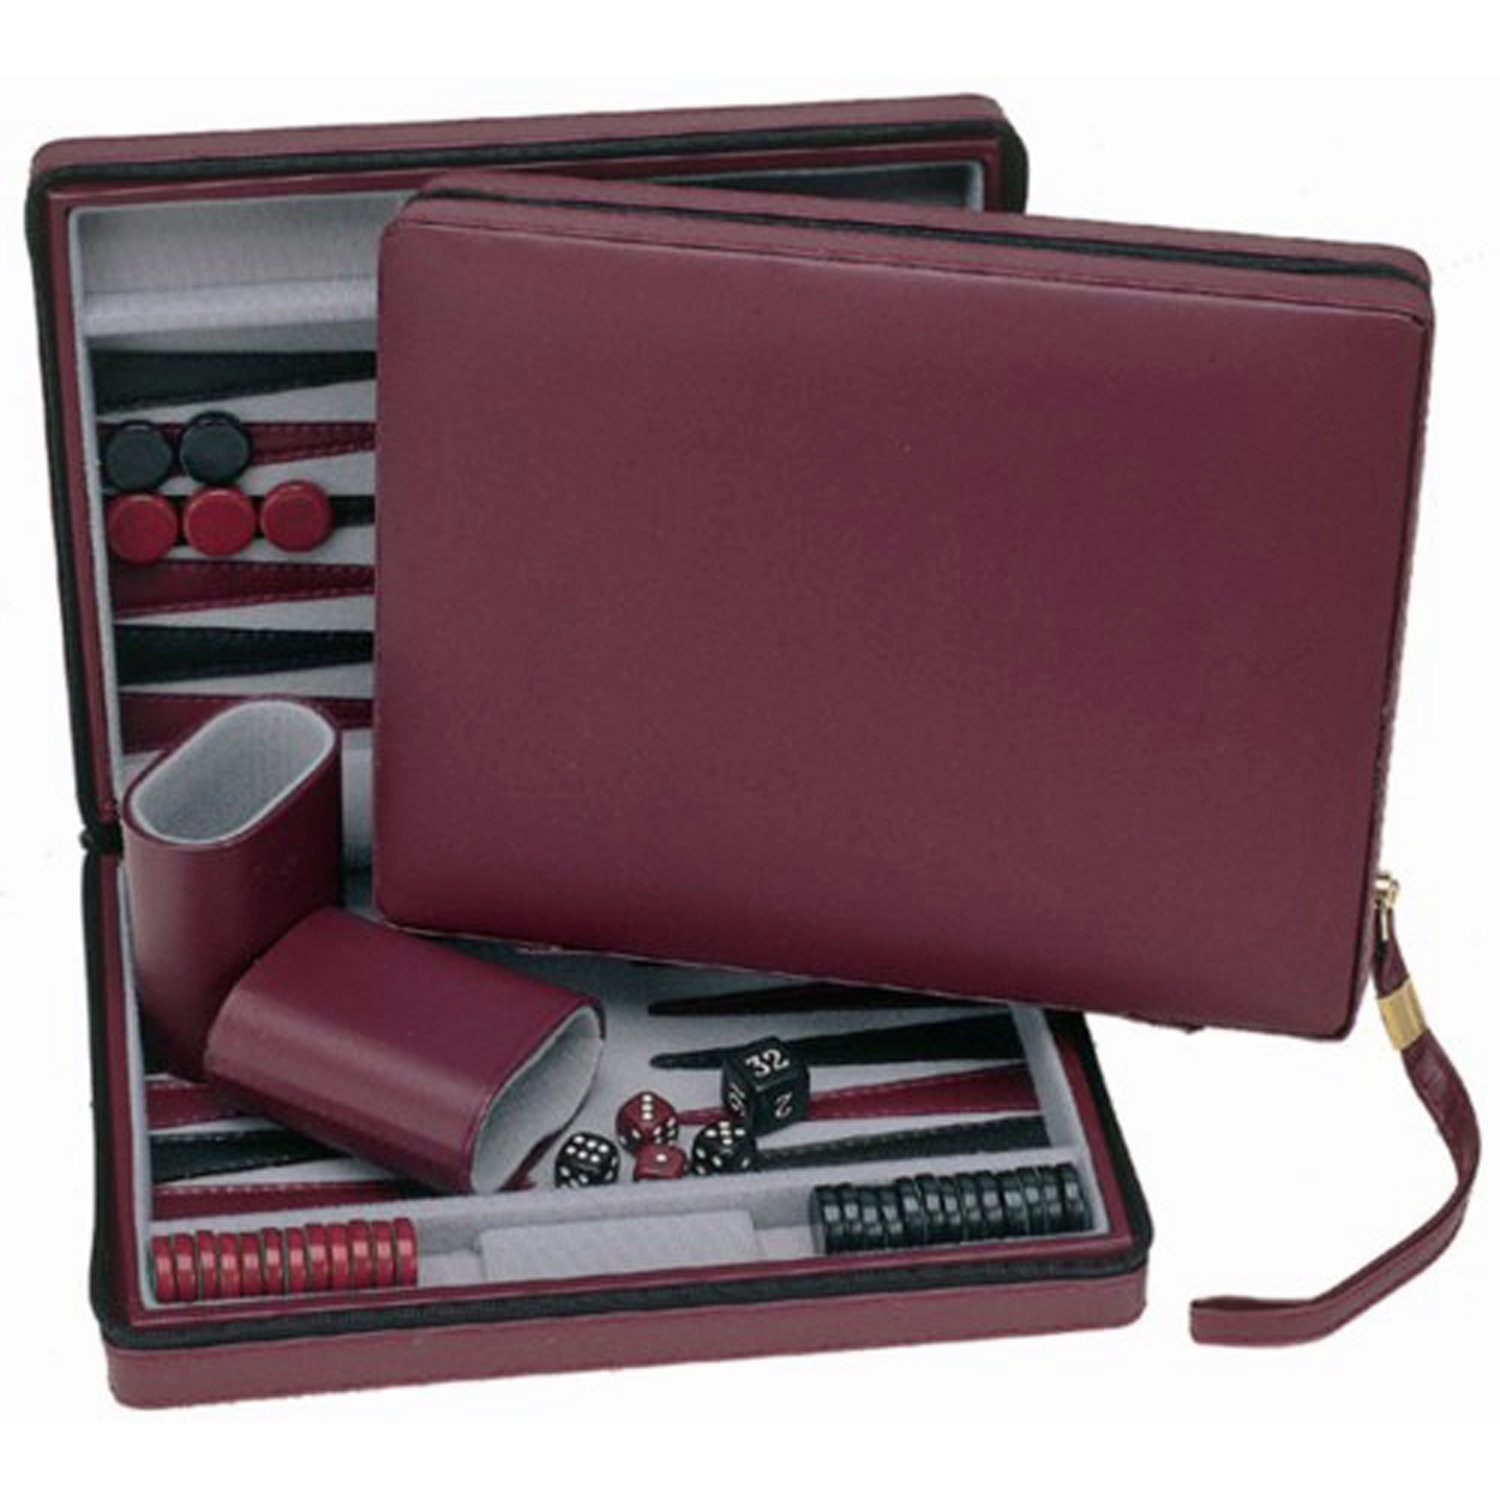 Wood Expressions WE Games Burgundy Magnetic Backgammon Set with Carrying Strap - Travel Size by WE Games (Image #1)